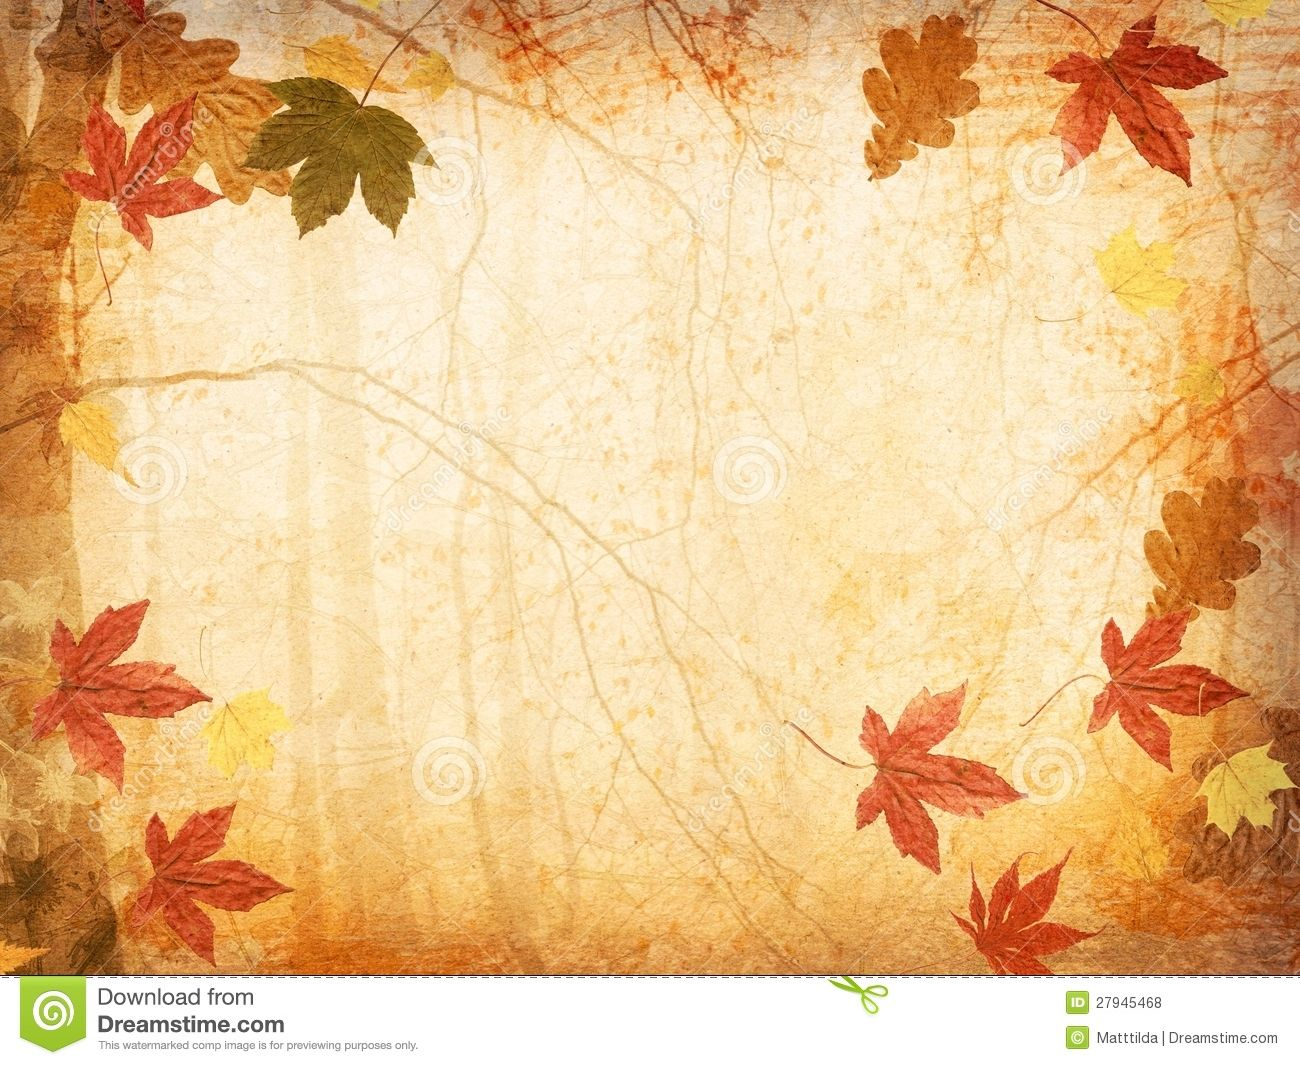 free fall backgrounds dorit mercatodos co rh dorit mercatodos co fall tree clipart background fall background clipart free